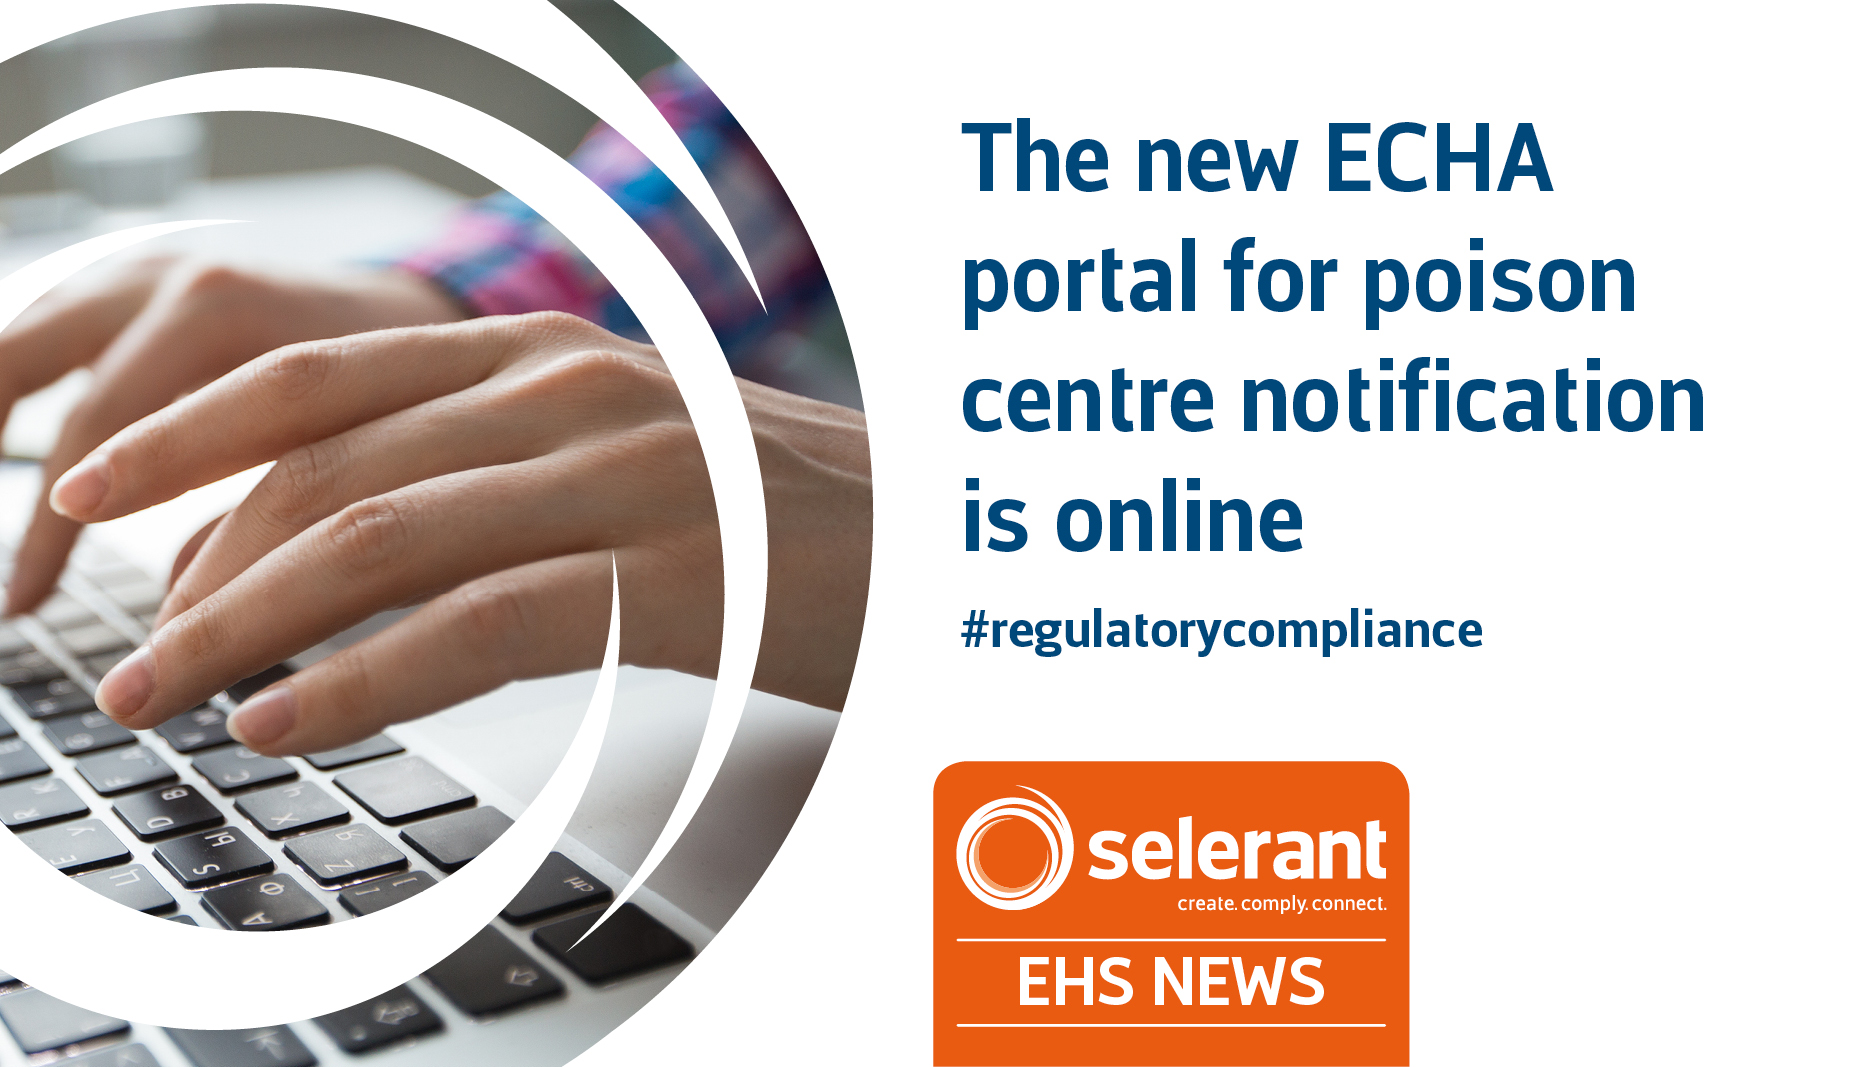 The new ECHA portal for poison centre notification is online